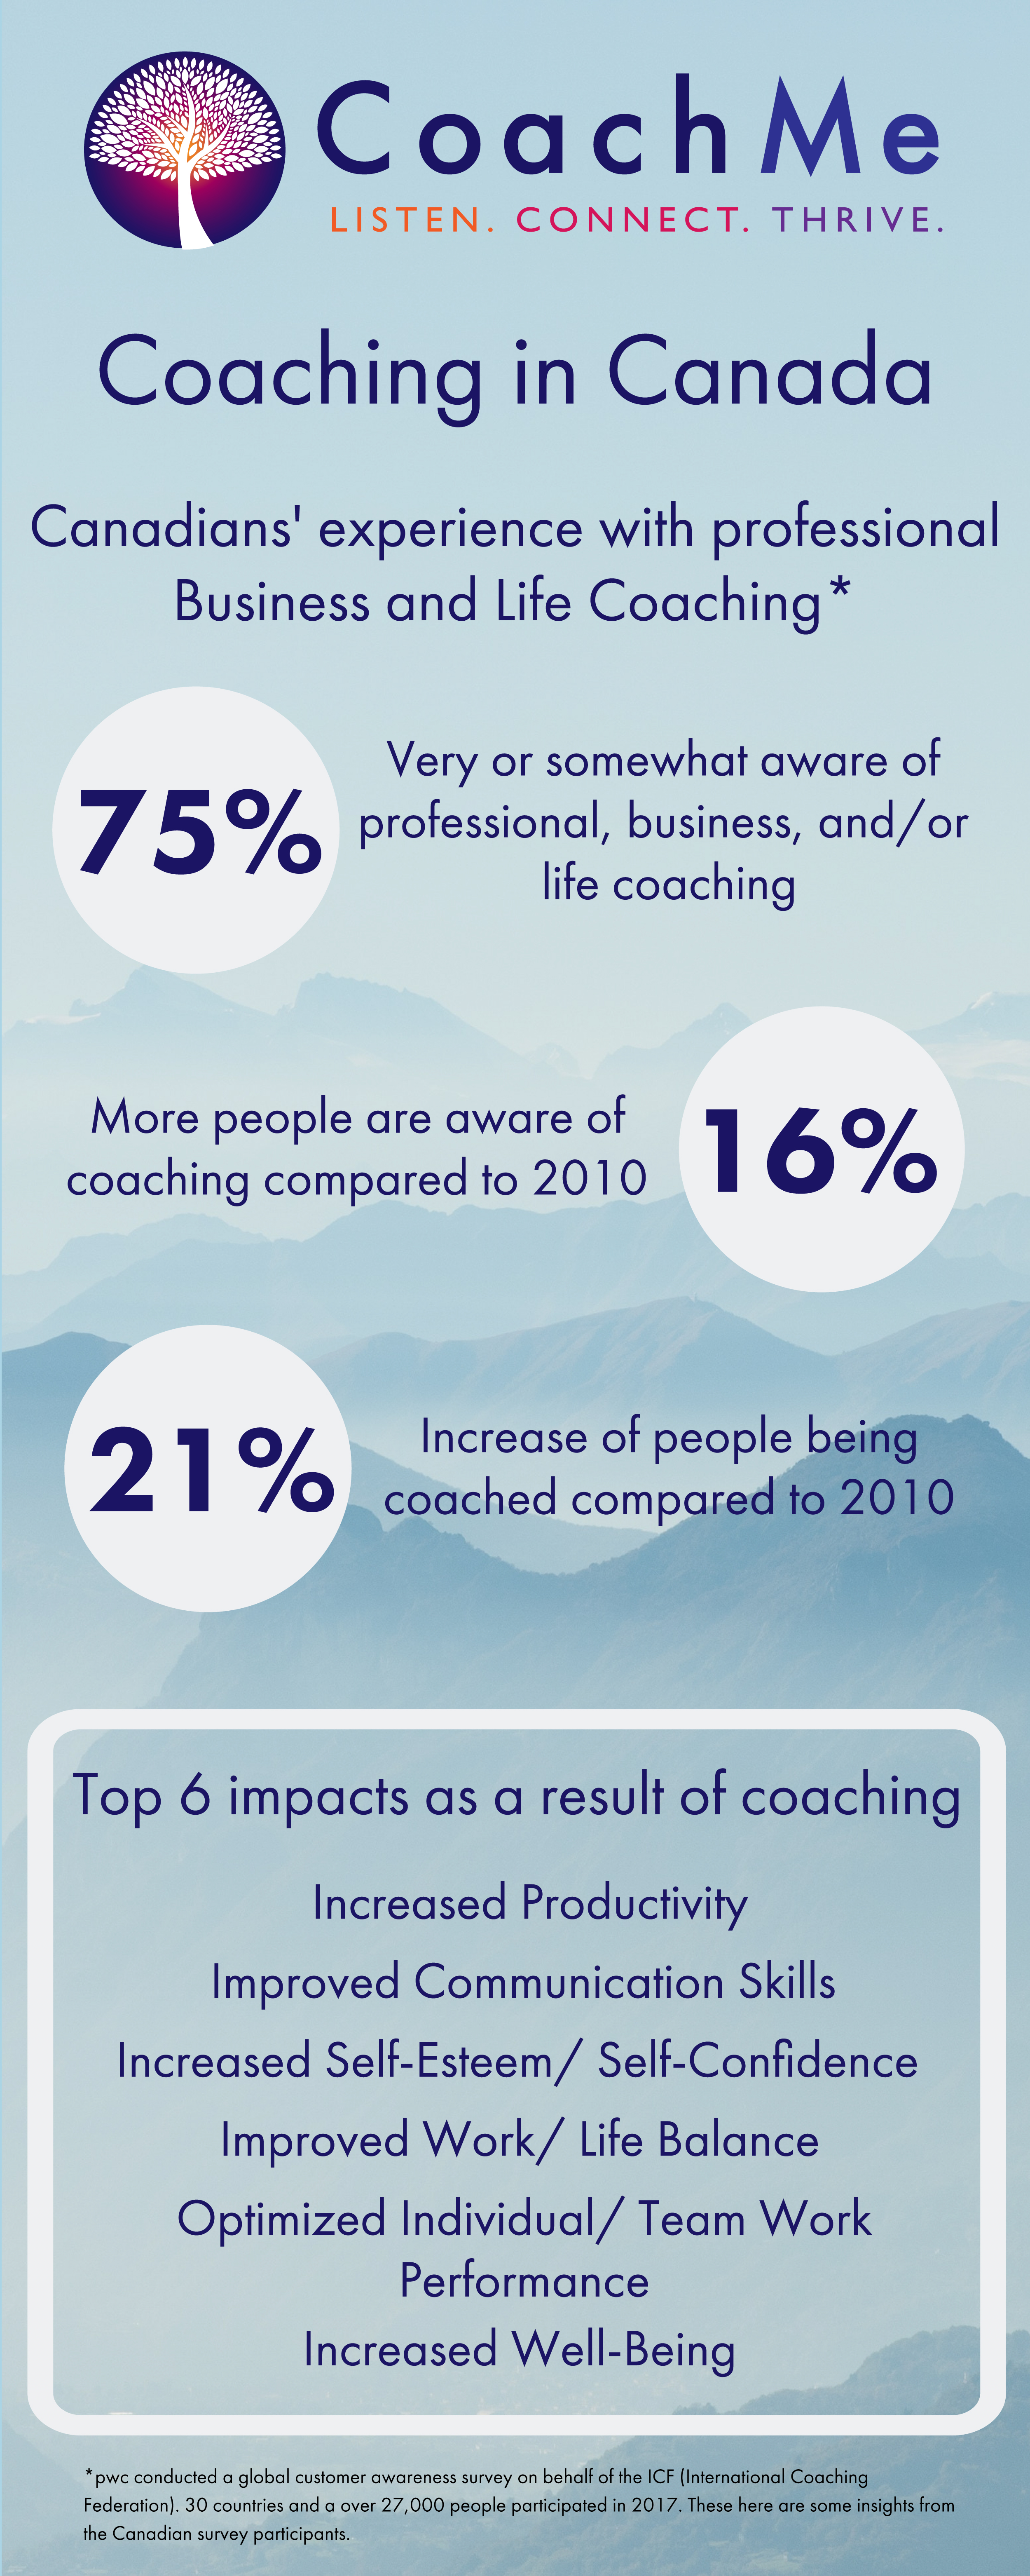 Coaching in Canada - International Coaching Federation ICF Survey - Coaching Community - CoachMe Vancouver